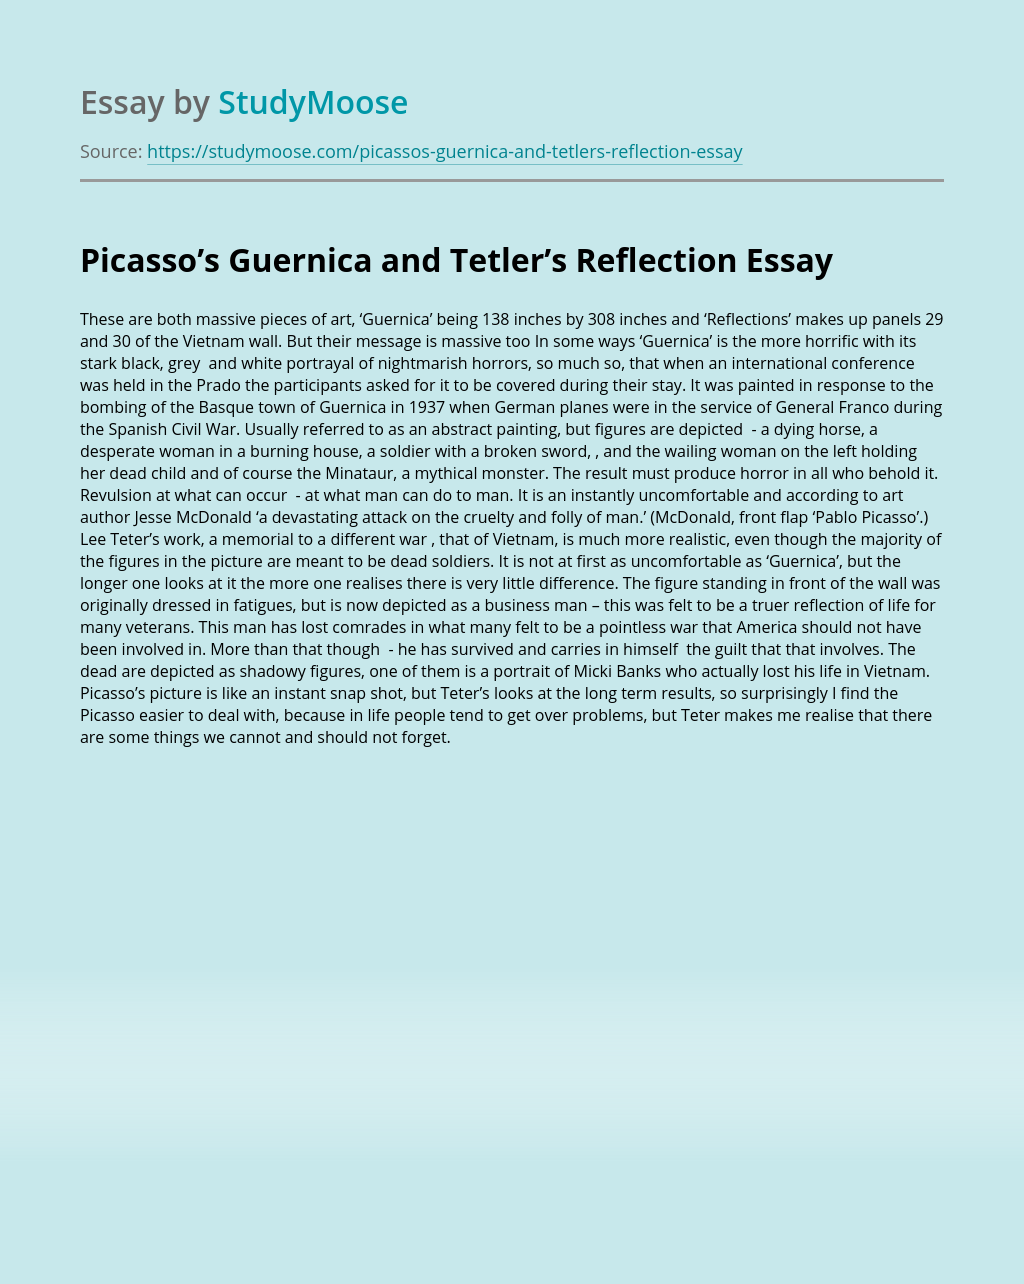 Picasso's Guernica and Tetler's Reflection